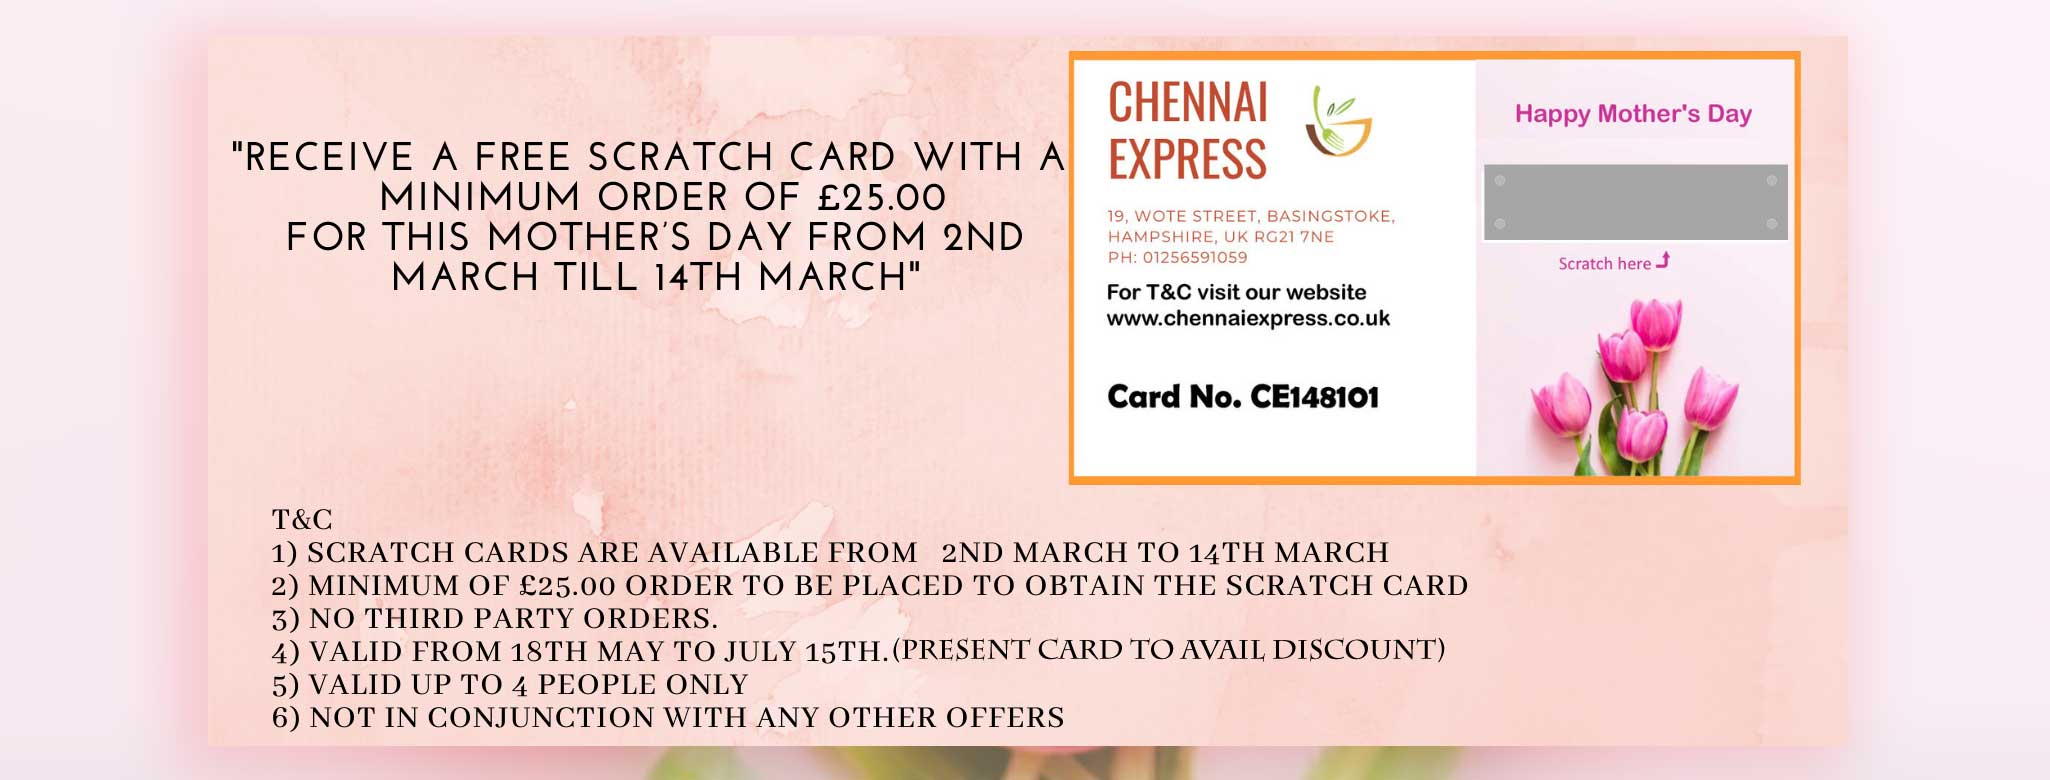 Mother's-day-Scratch-card-poster. Click here for T&C